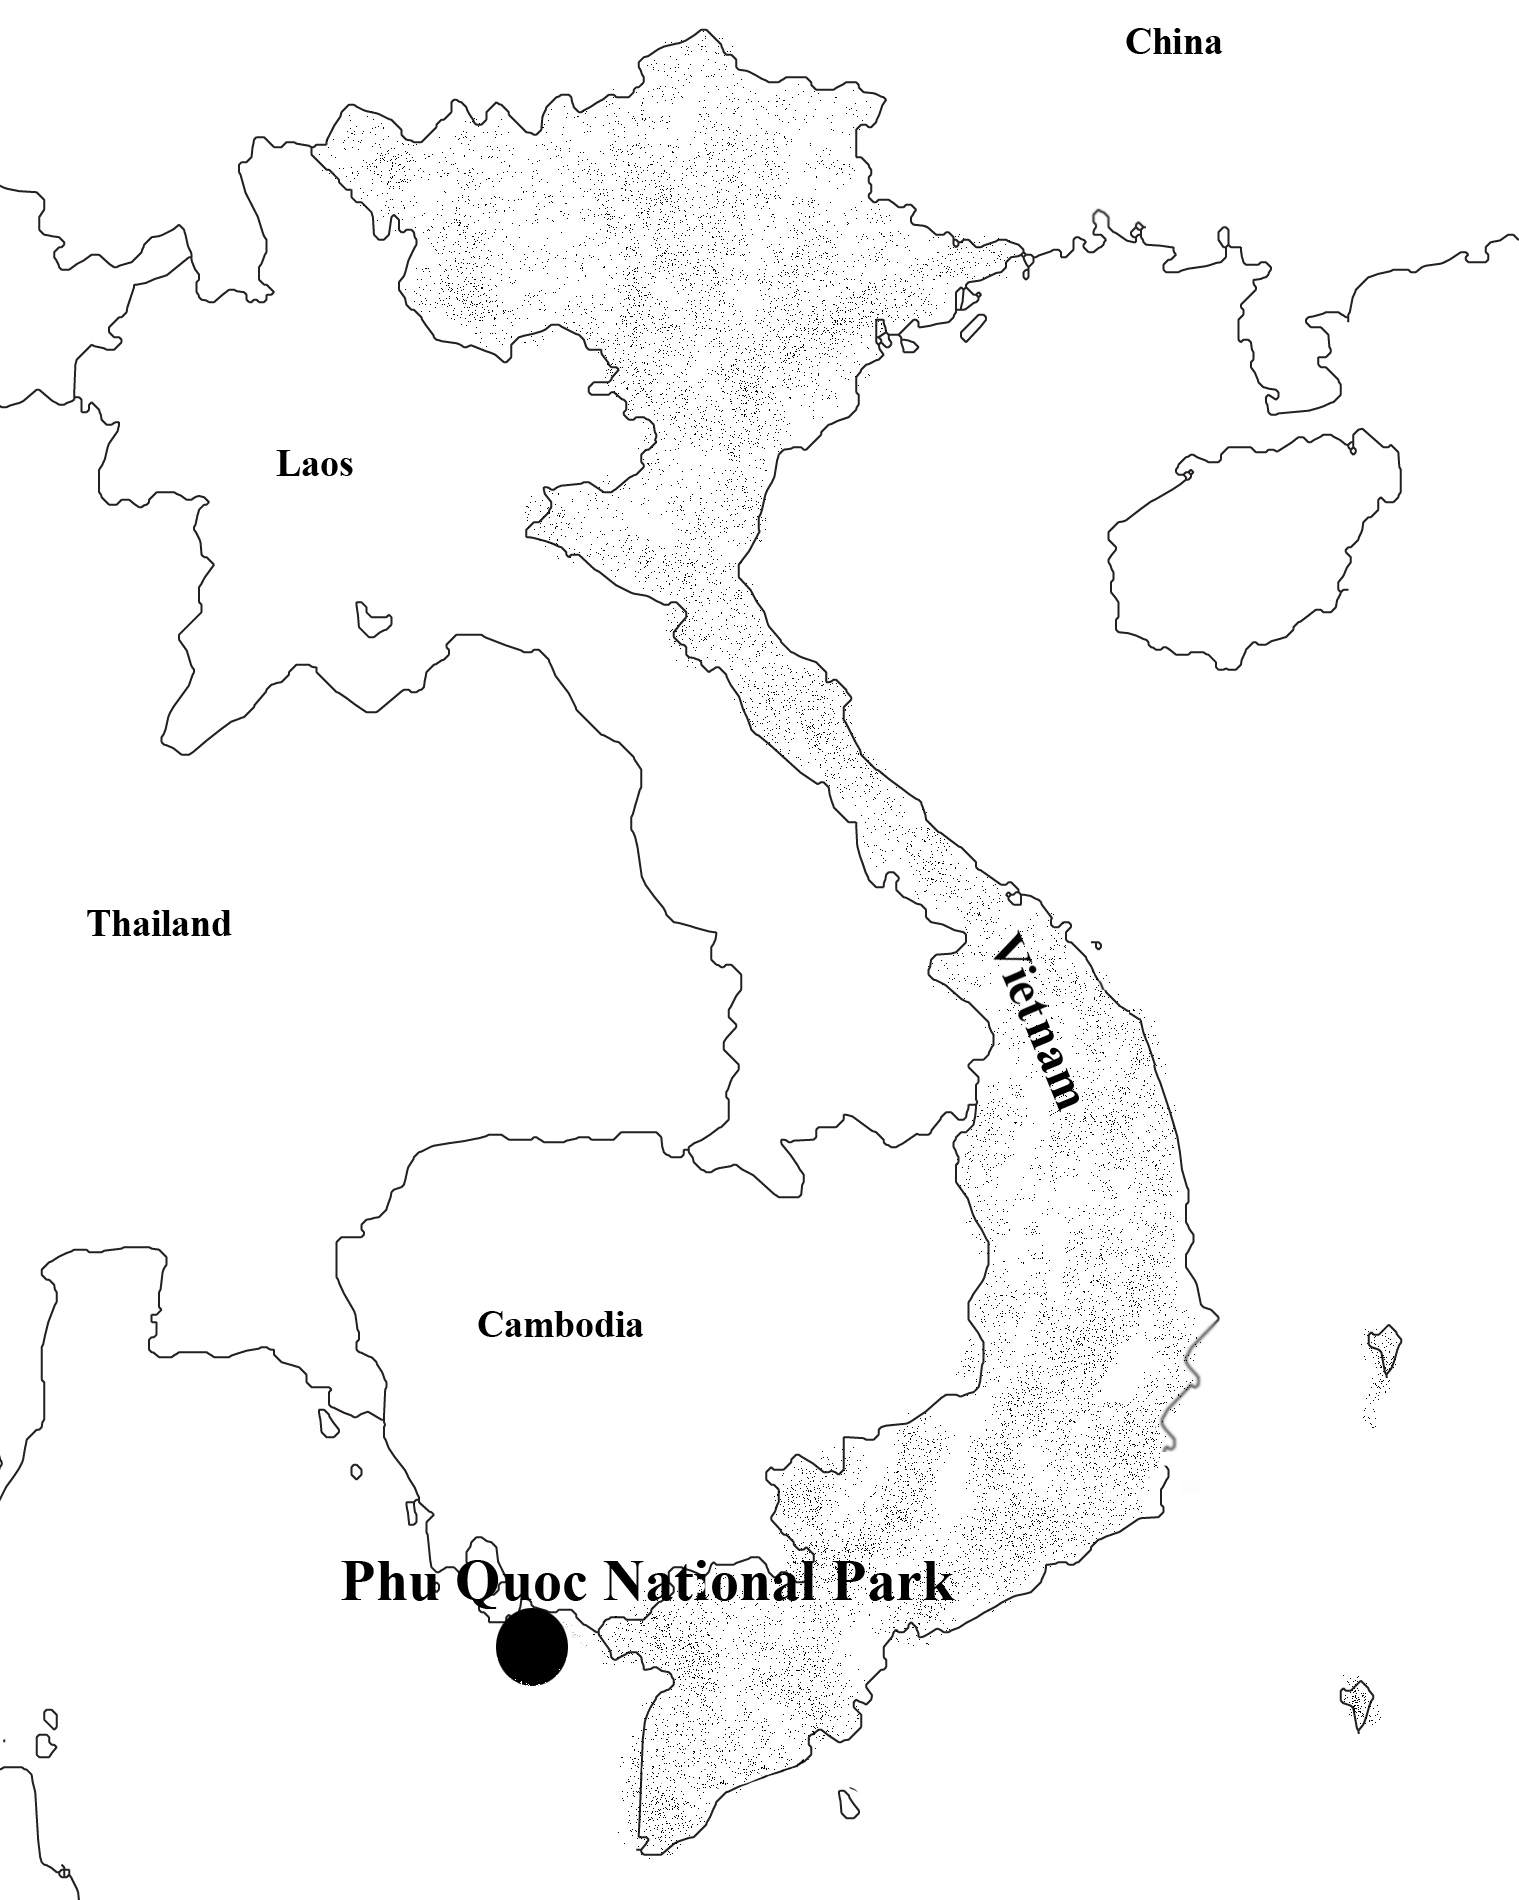 Fig.1. Locality of Phu Quoc National Park, Vietnam.